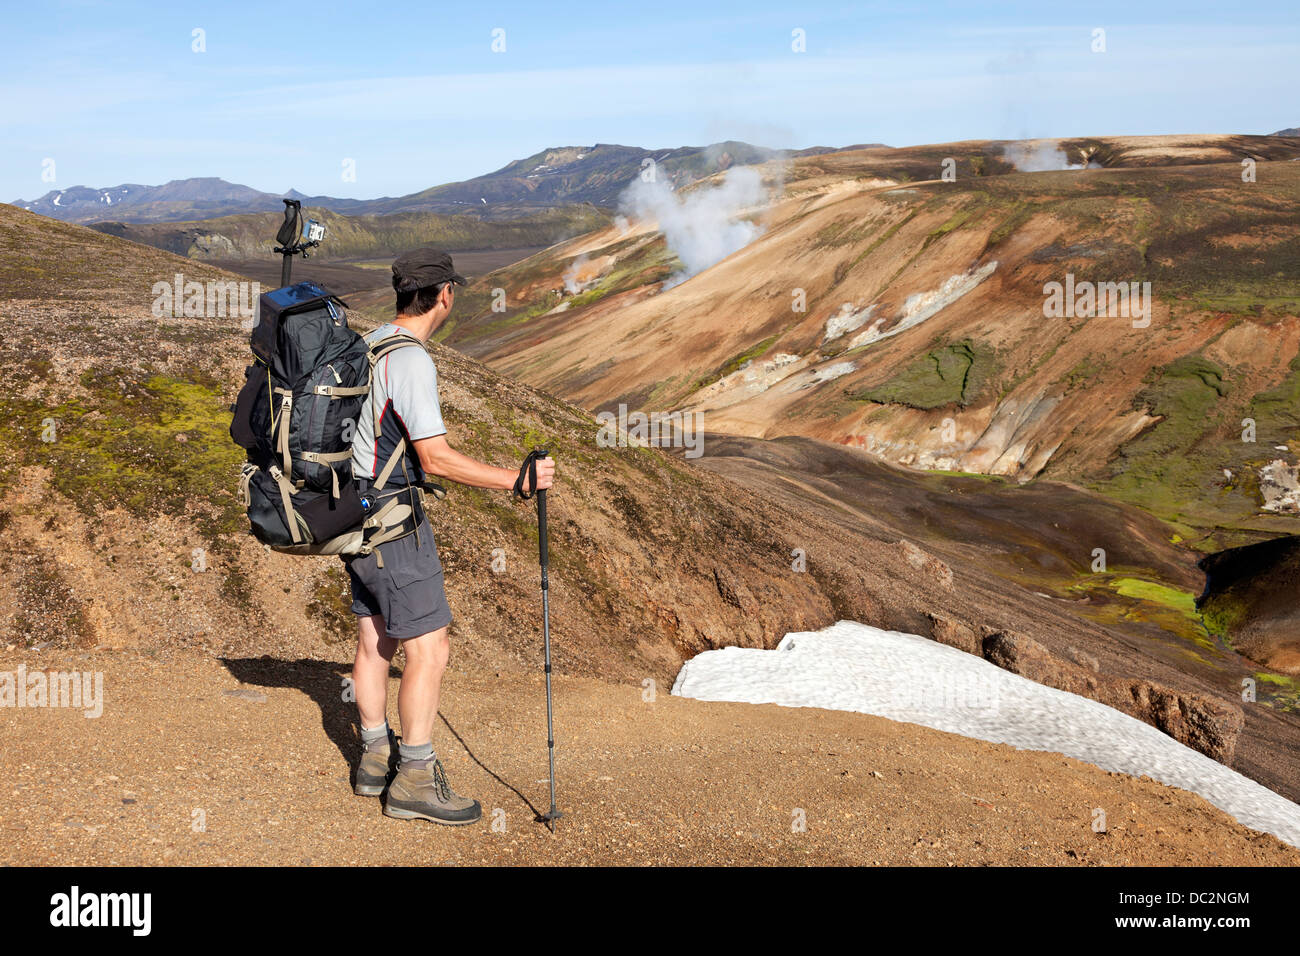 Hiker Looking Towards Volcanic Steam Vents on the Laugavegur Hiking Trail Fjallabak Iceland - Stock Image